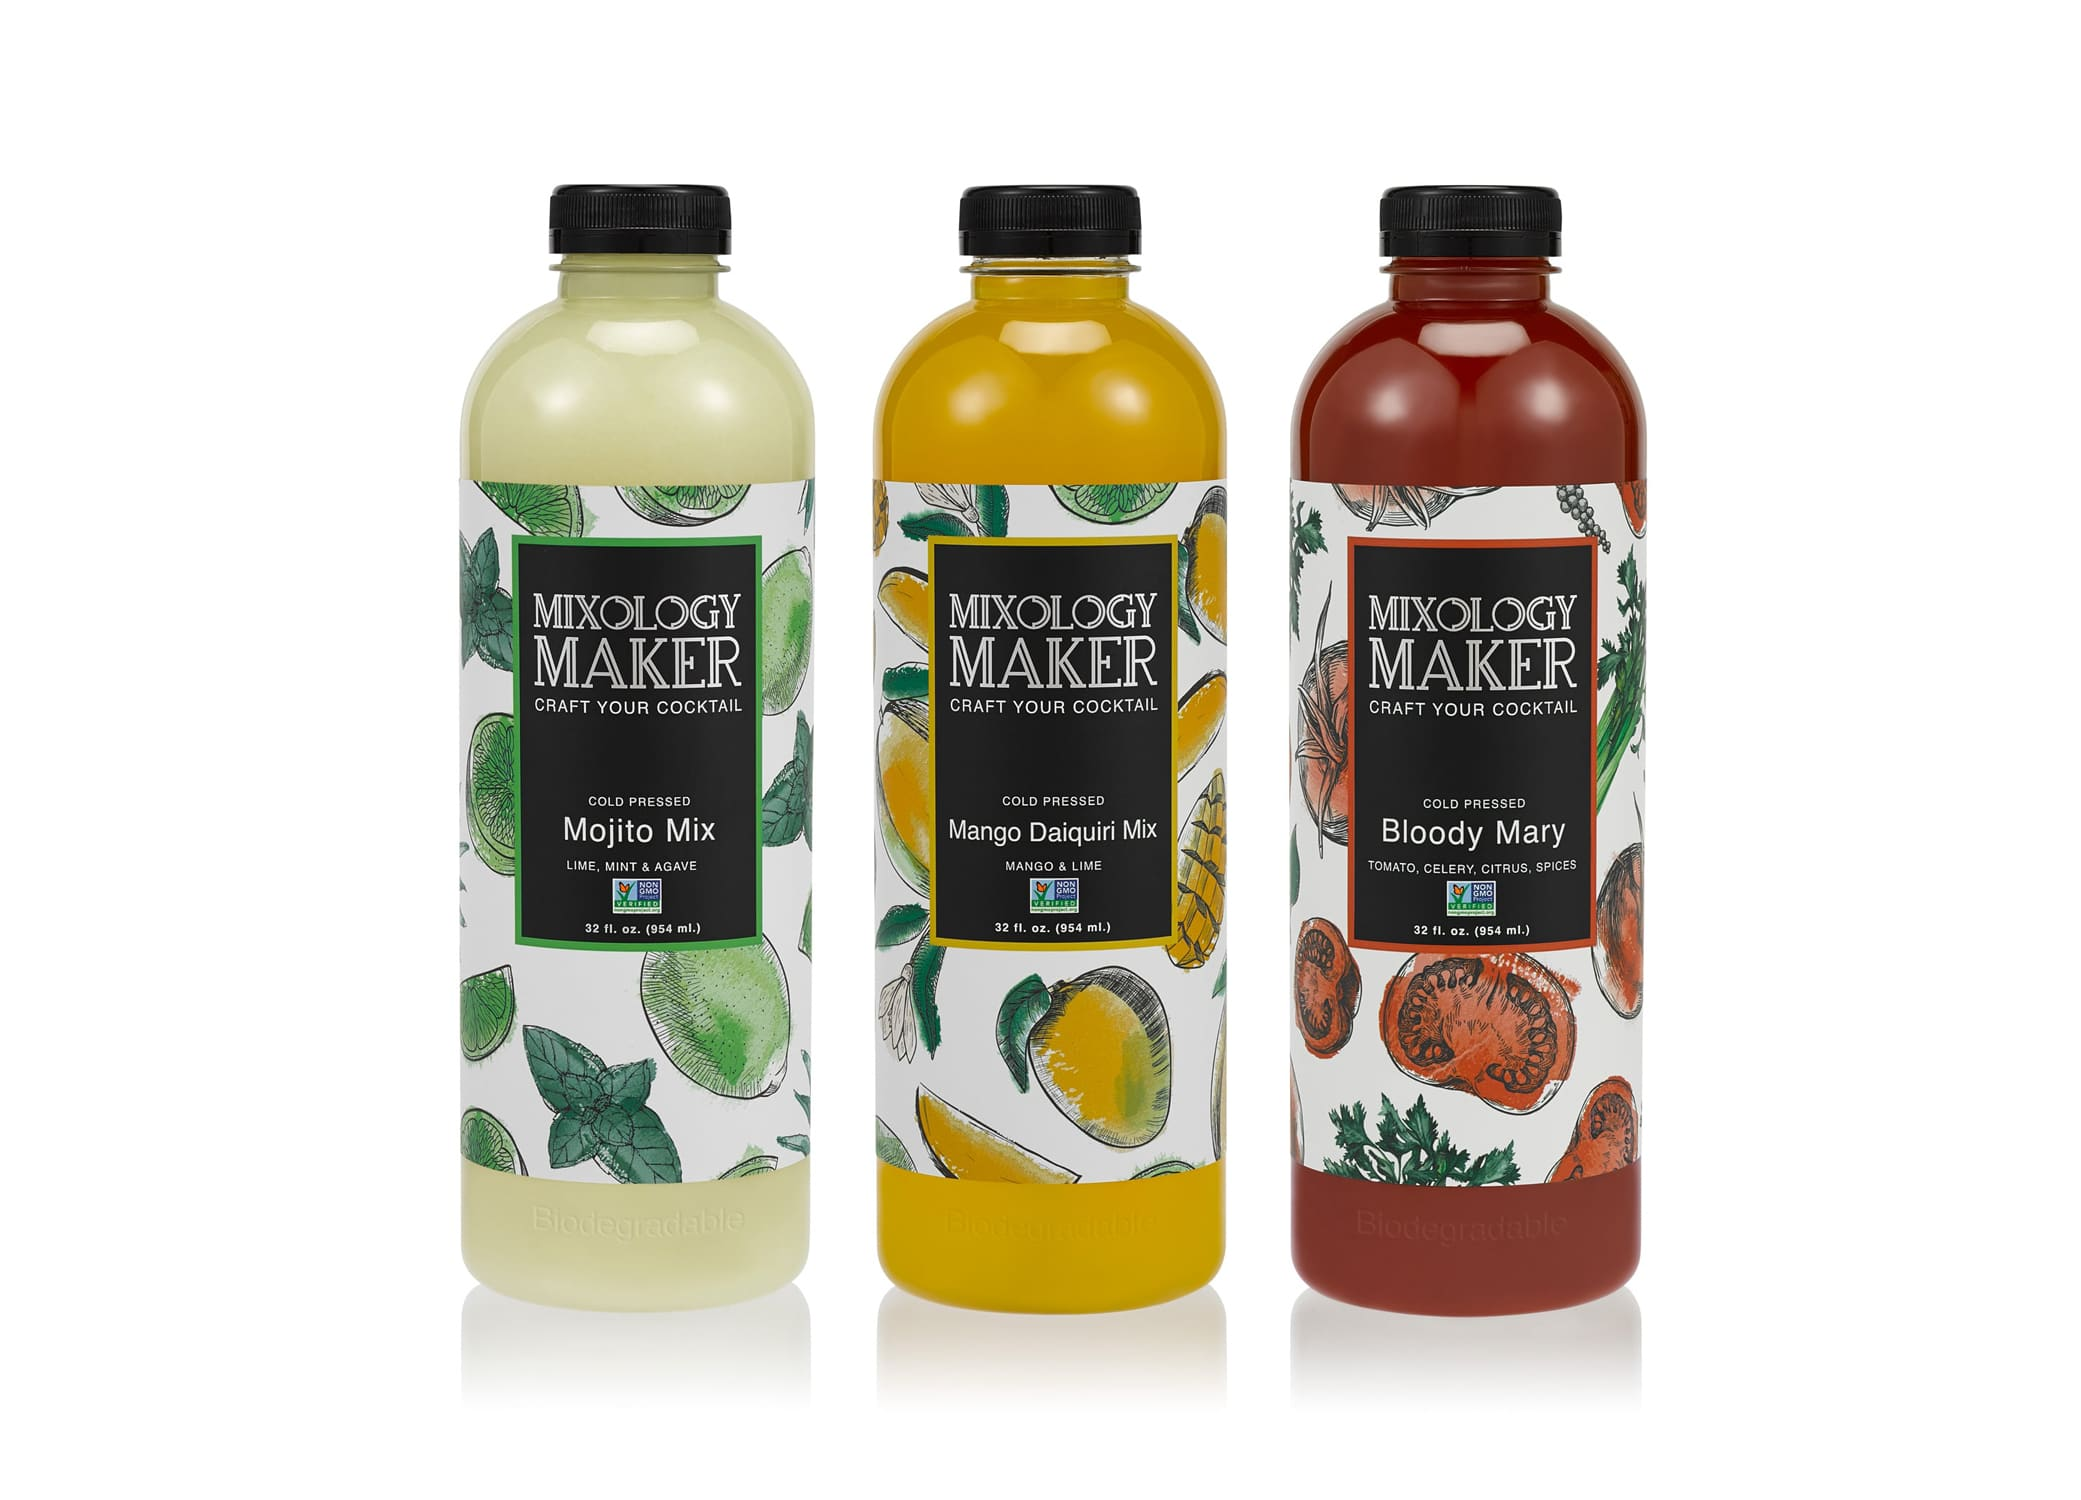 Mixology Maker drink packaging design showcasing three flavors with bright label design against white backdrop.